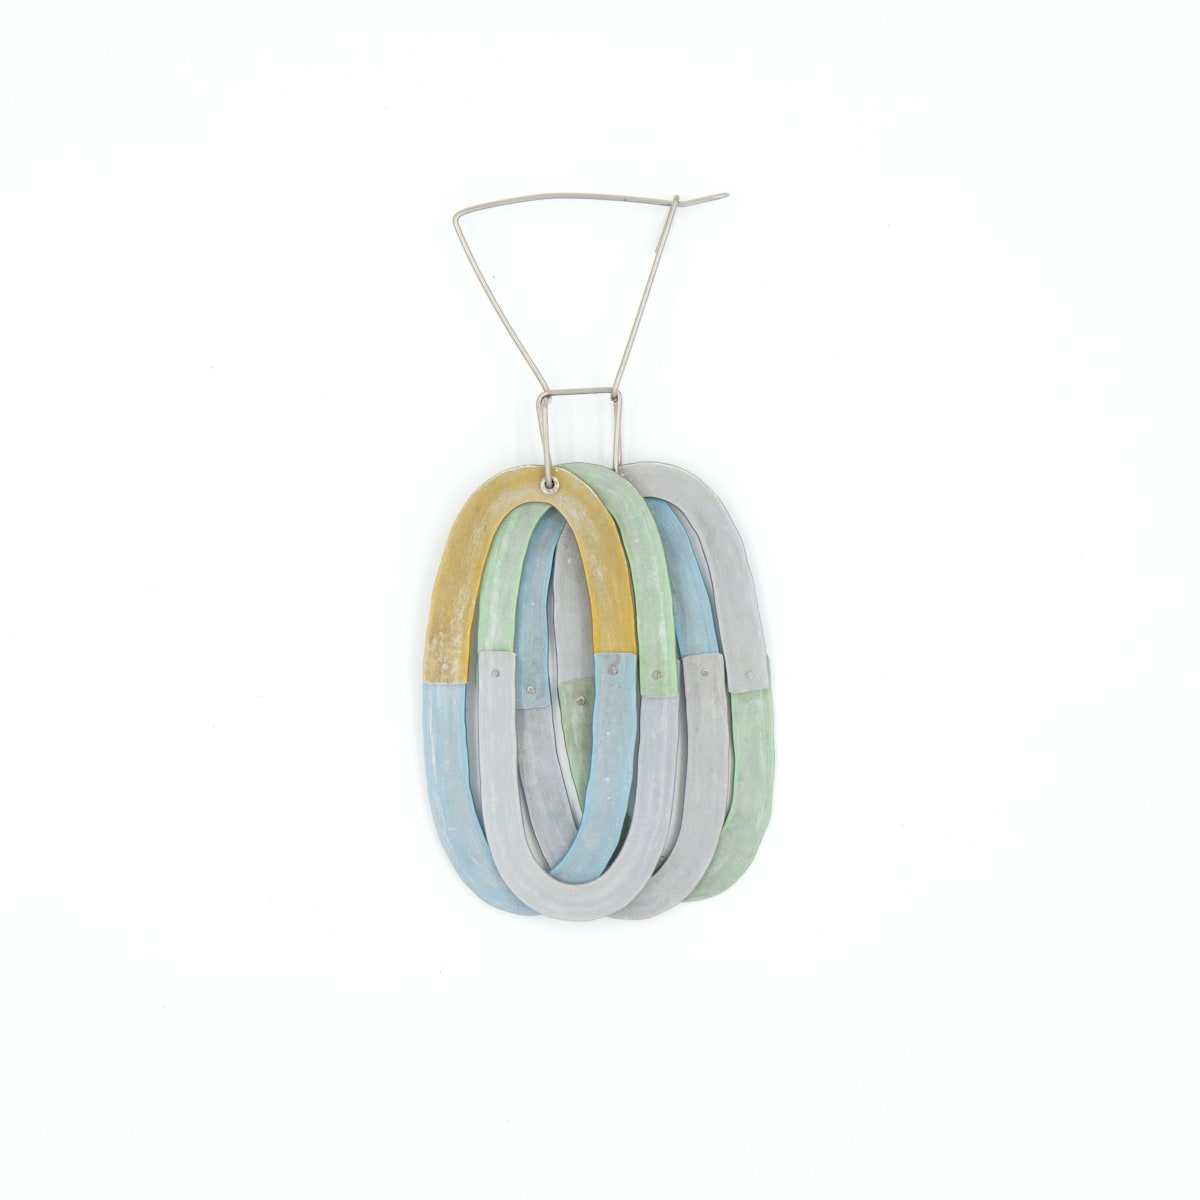 Taylor Zarkades King, Cross Eyed Tag Brooch